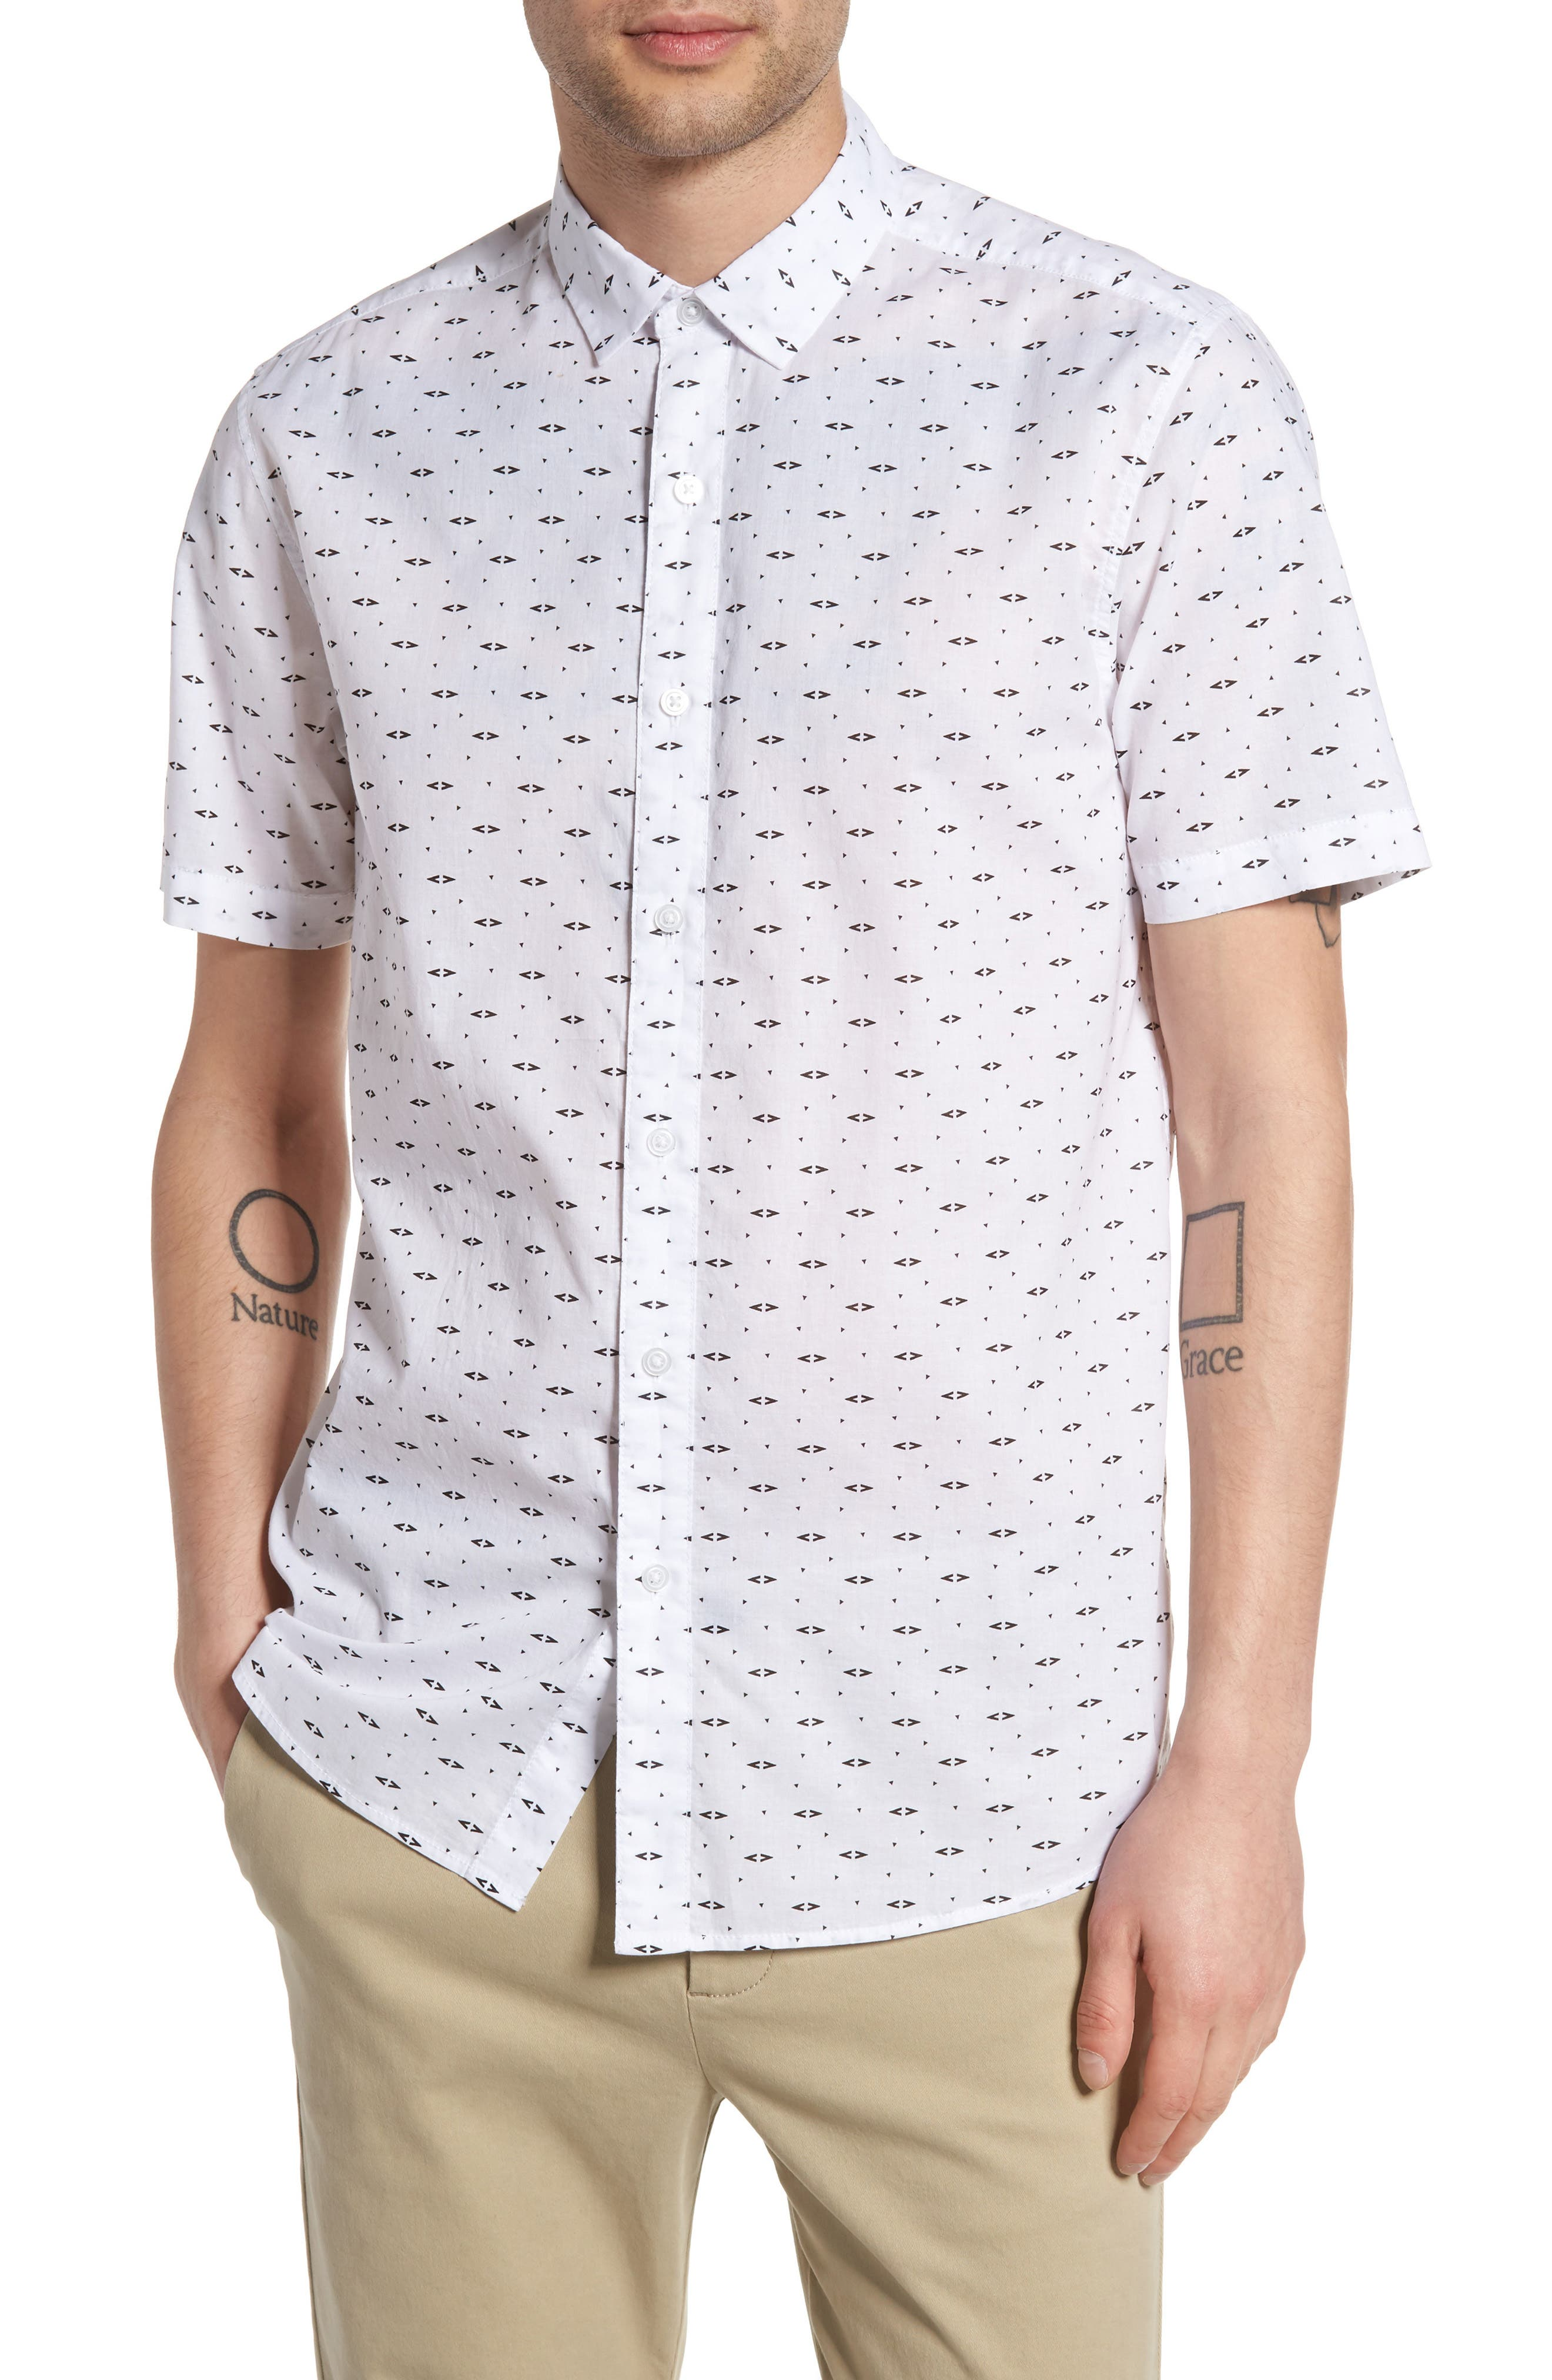 Topman Arrow Print Shirt